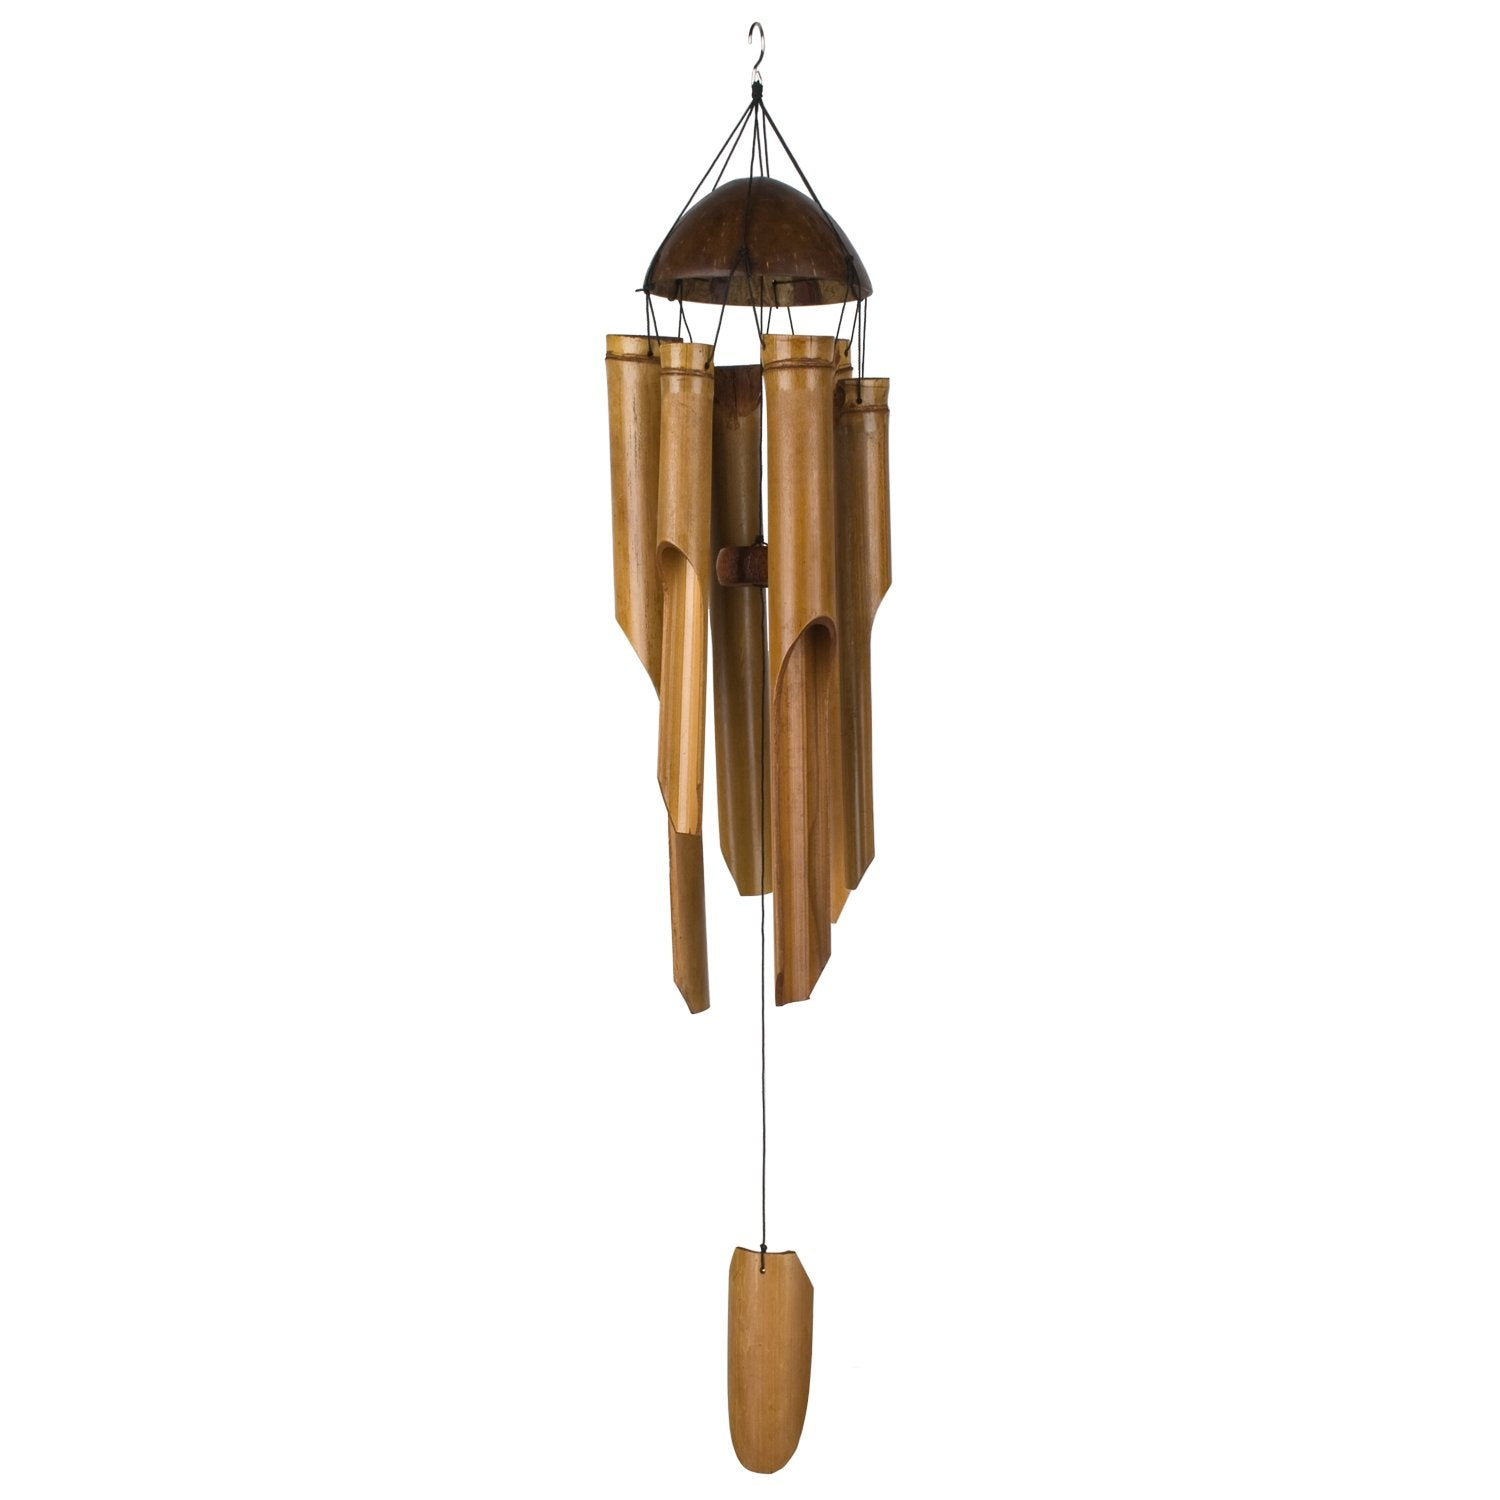 Half Coconut Bamboo Chime - Large full product image